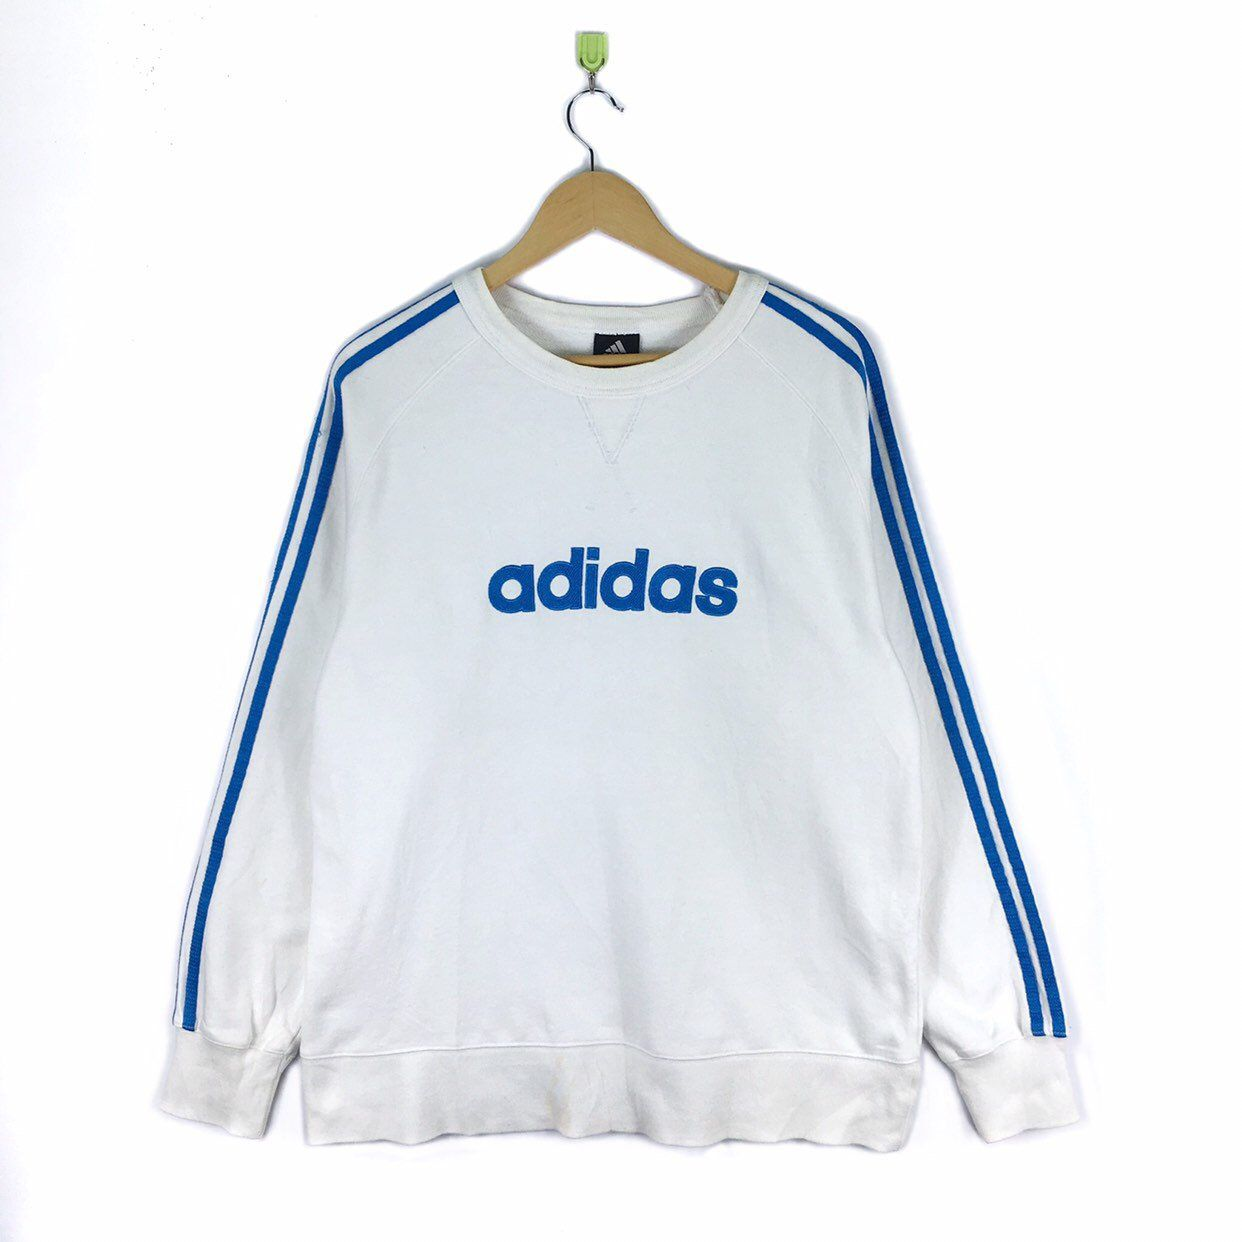 Excited To Share This Item From My Etsy Shop Vintage Adidas Crewneck Sweatshirt Adidas Side Tape Trefoils Vintage Adidas Adidas Sweater Crew Neck Sweatshirt [ 1242 x 1242 Pixel ]